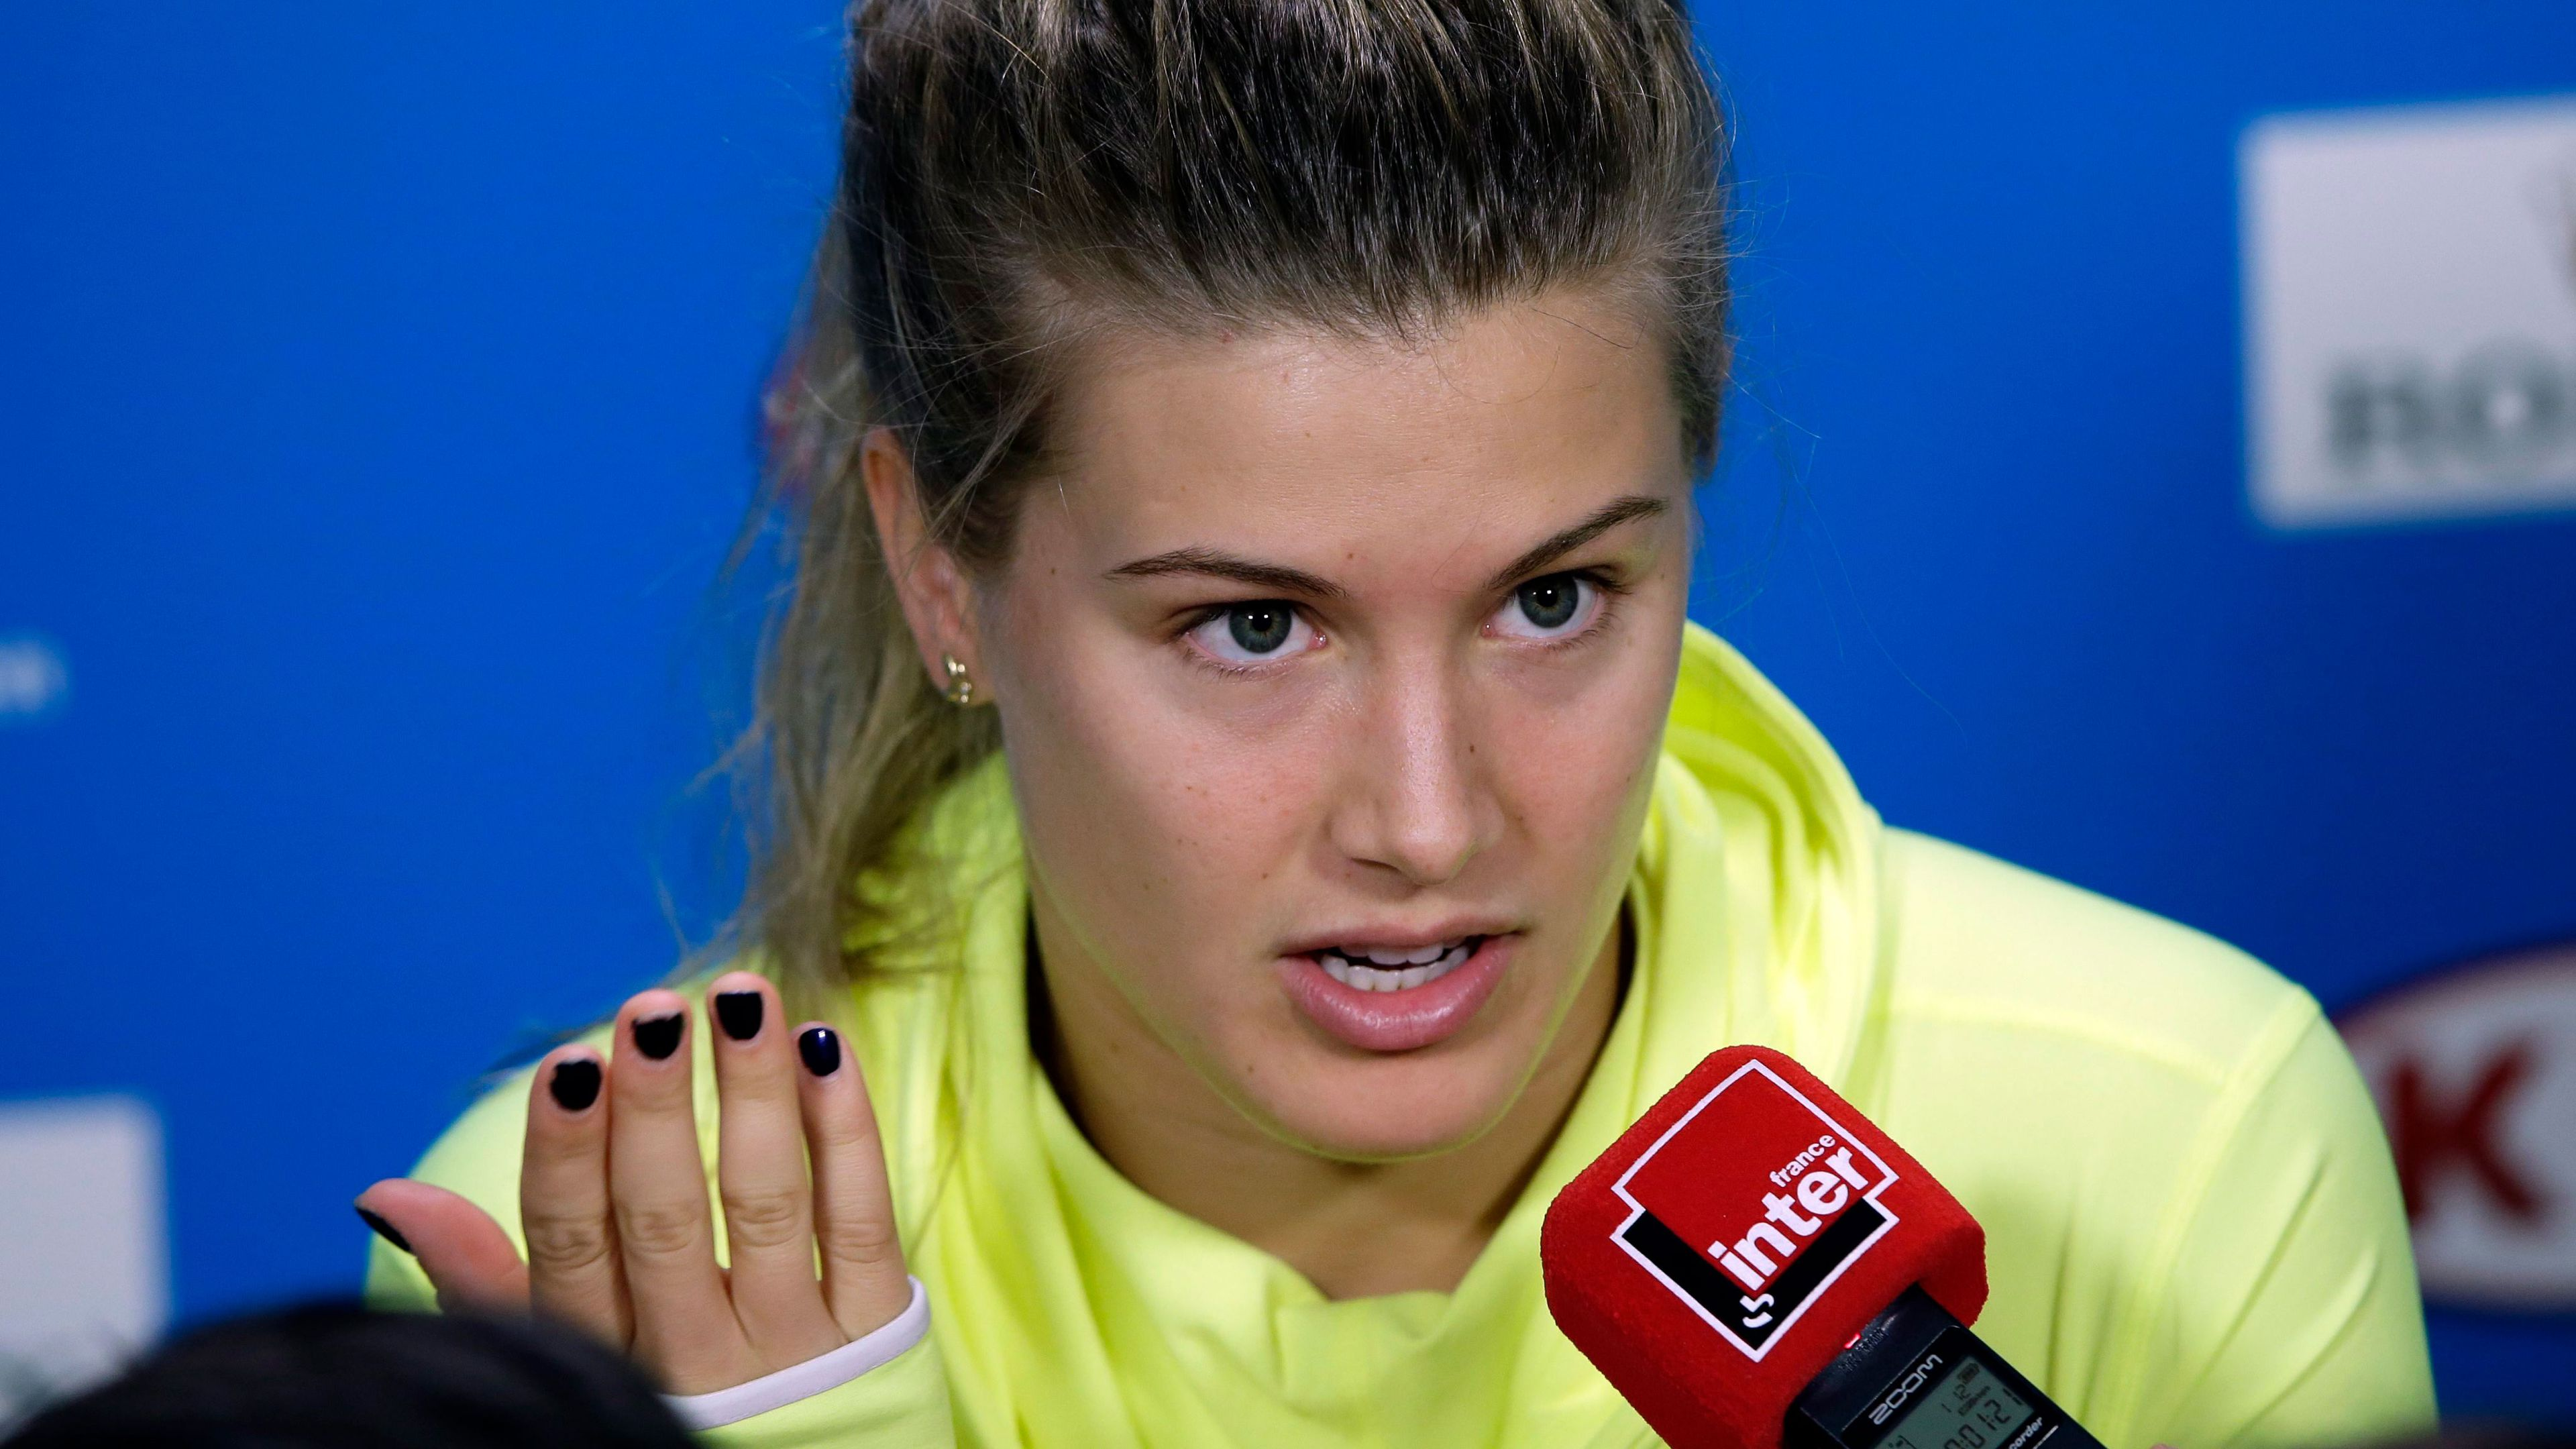 How one of the brightest stars in tennis unravelled: Eugenie Bouchard's comeback from steep decline